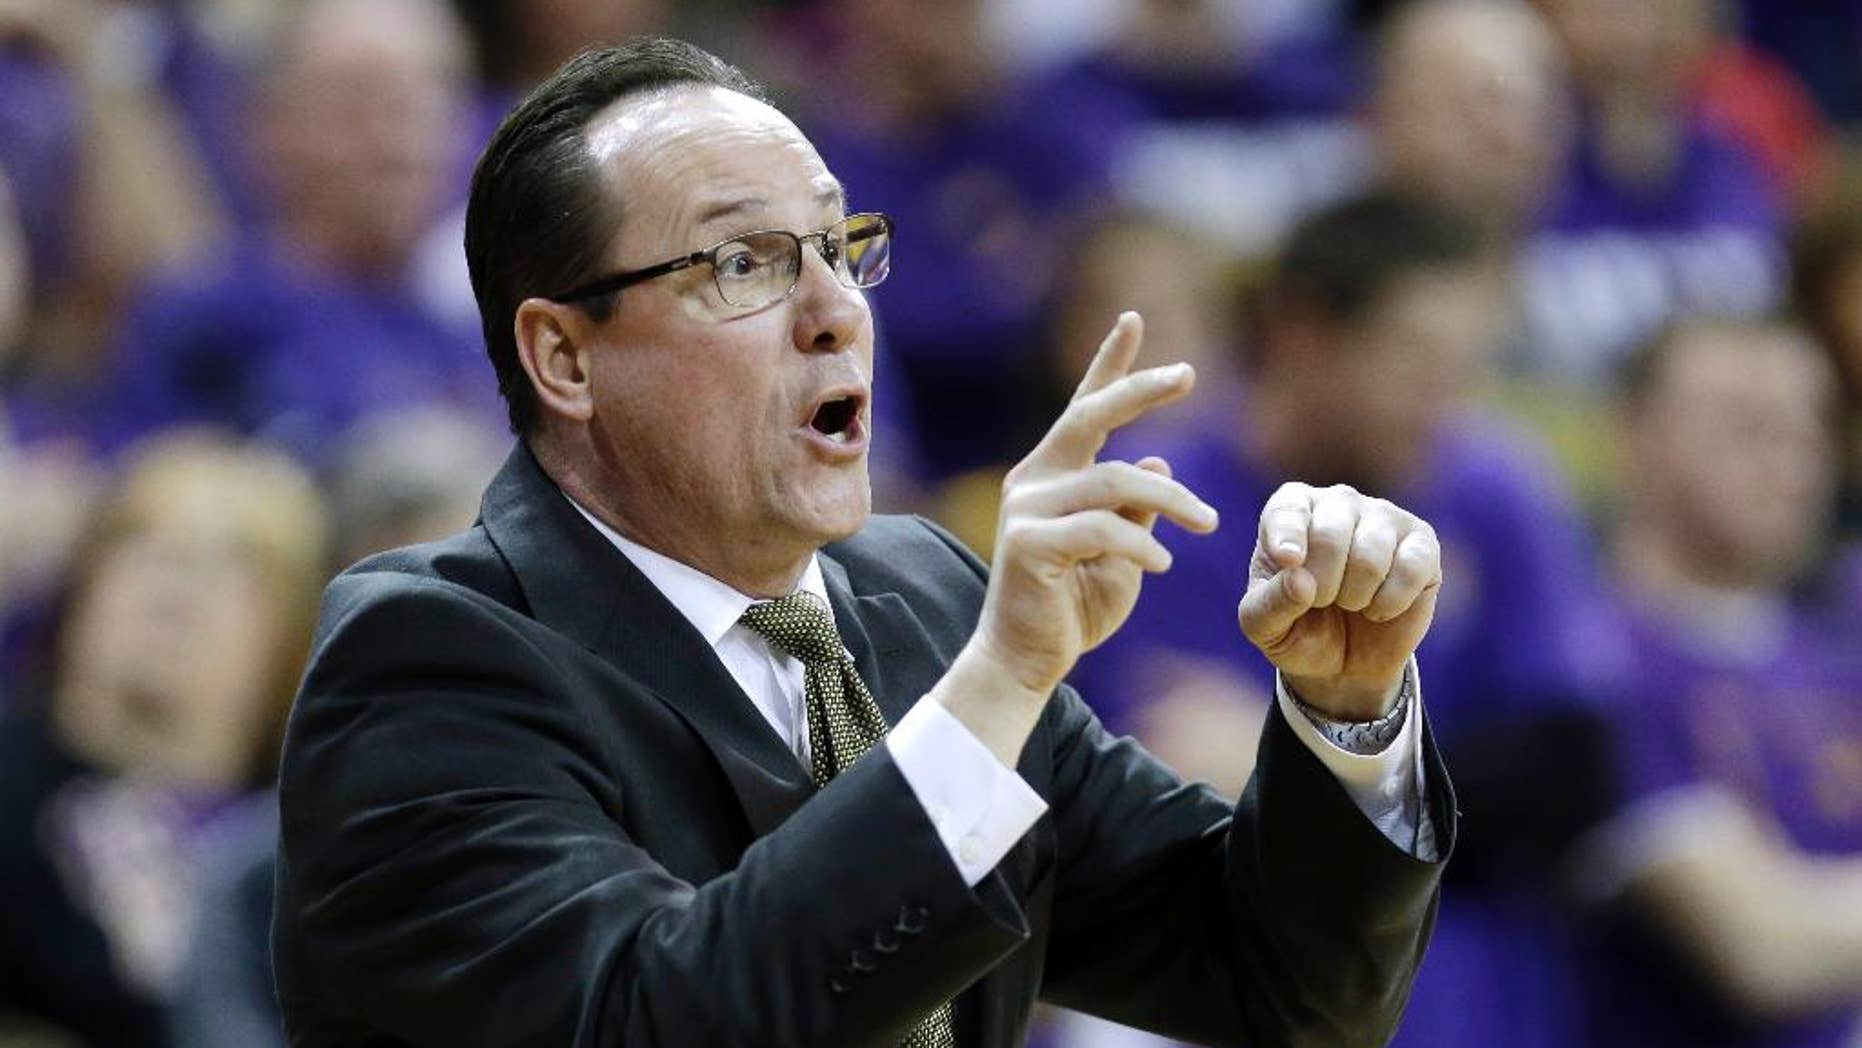 FILE - In this Feb. 8, 2014 file photo, Wichita State head coach Gregg Marshall directs his team during the second half of an NCAA college basketball game against Northern Iowa, in Cedar Falls, Iowa. Gregg Marshall didn't learn on the knee of Mike Krzyzewski or Bob Knight. He didn't get his start at UCLA or Kentucky. No, the Wichita State coach cut his teeth at places like Randolph-Macon, Belmont Abbey and the College of Charleston, giving a unique twist to his story of success. (AP Photo/Charlie Neibergall, File)